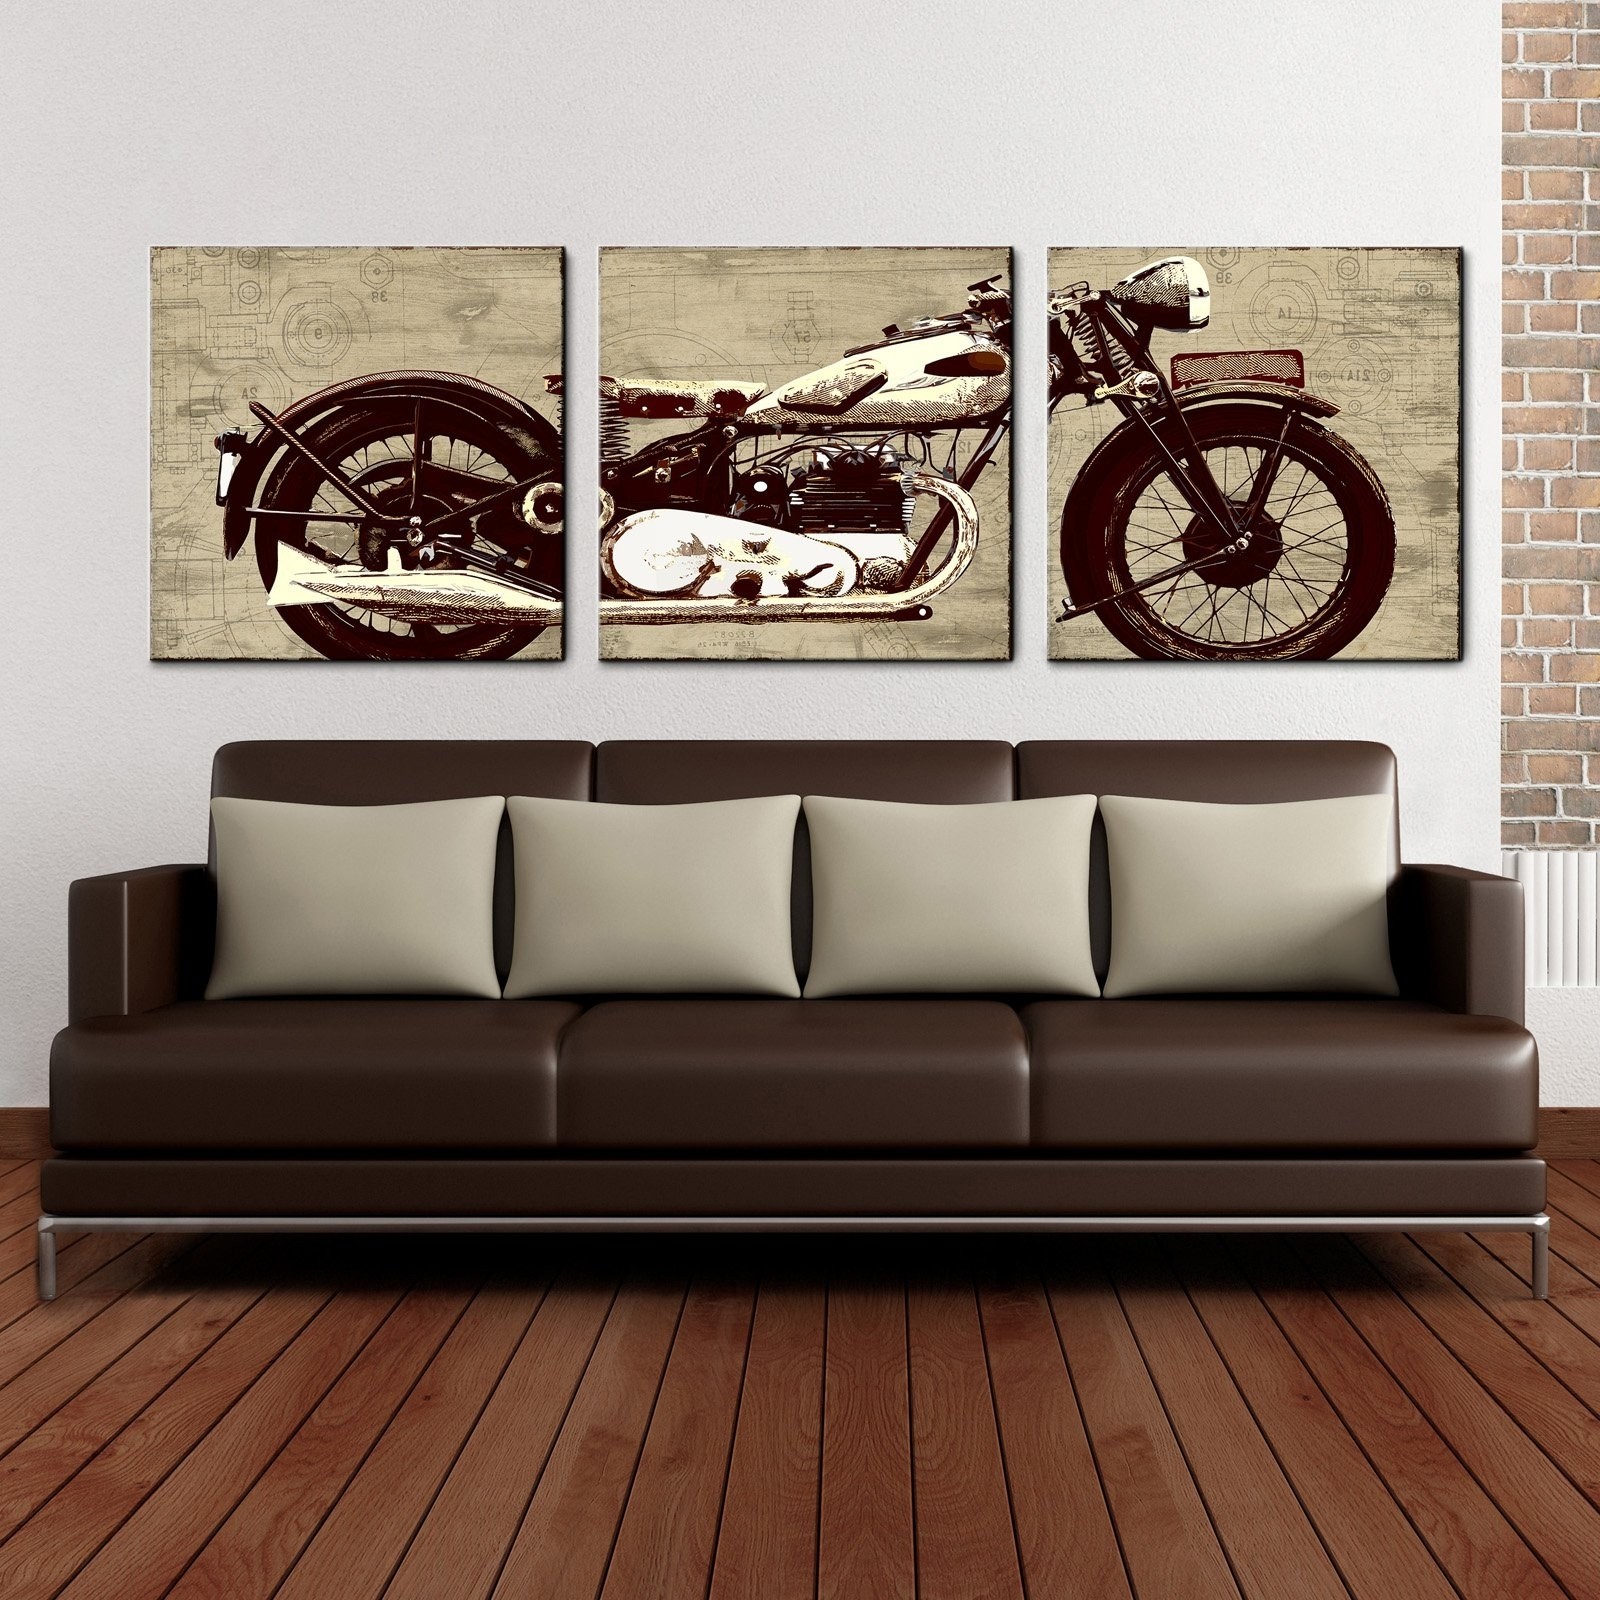 Motorcycle Wall Art Inside Best And Newest Motorcycle 24 X 72 Canvas Art Print Triptych – Walmart (Gallery 10 of 20)